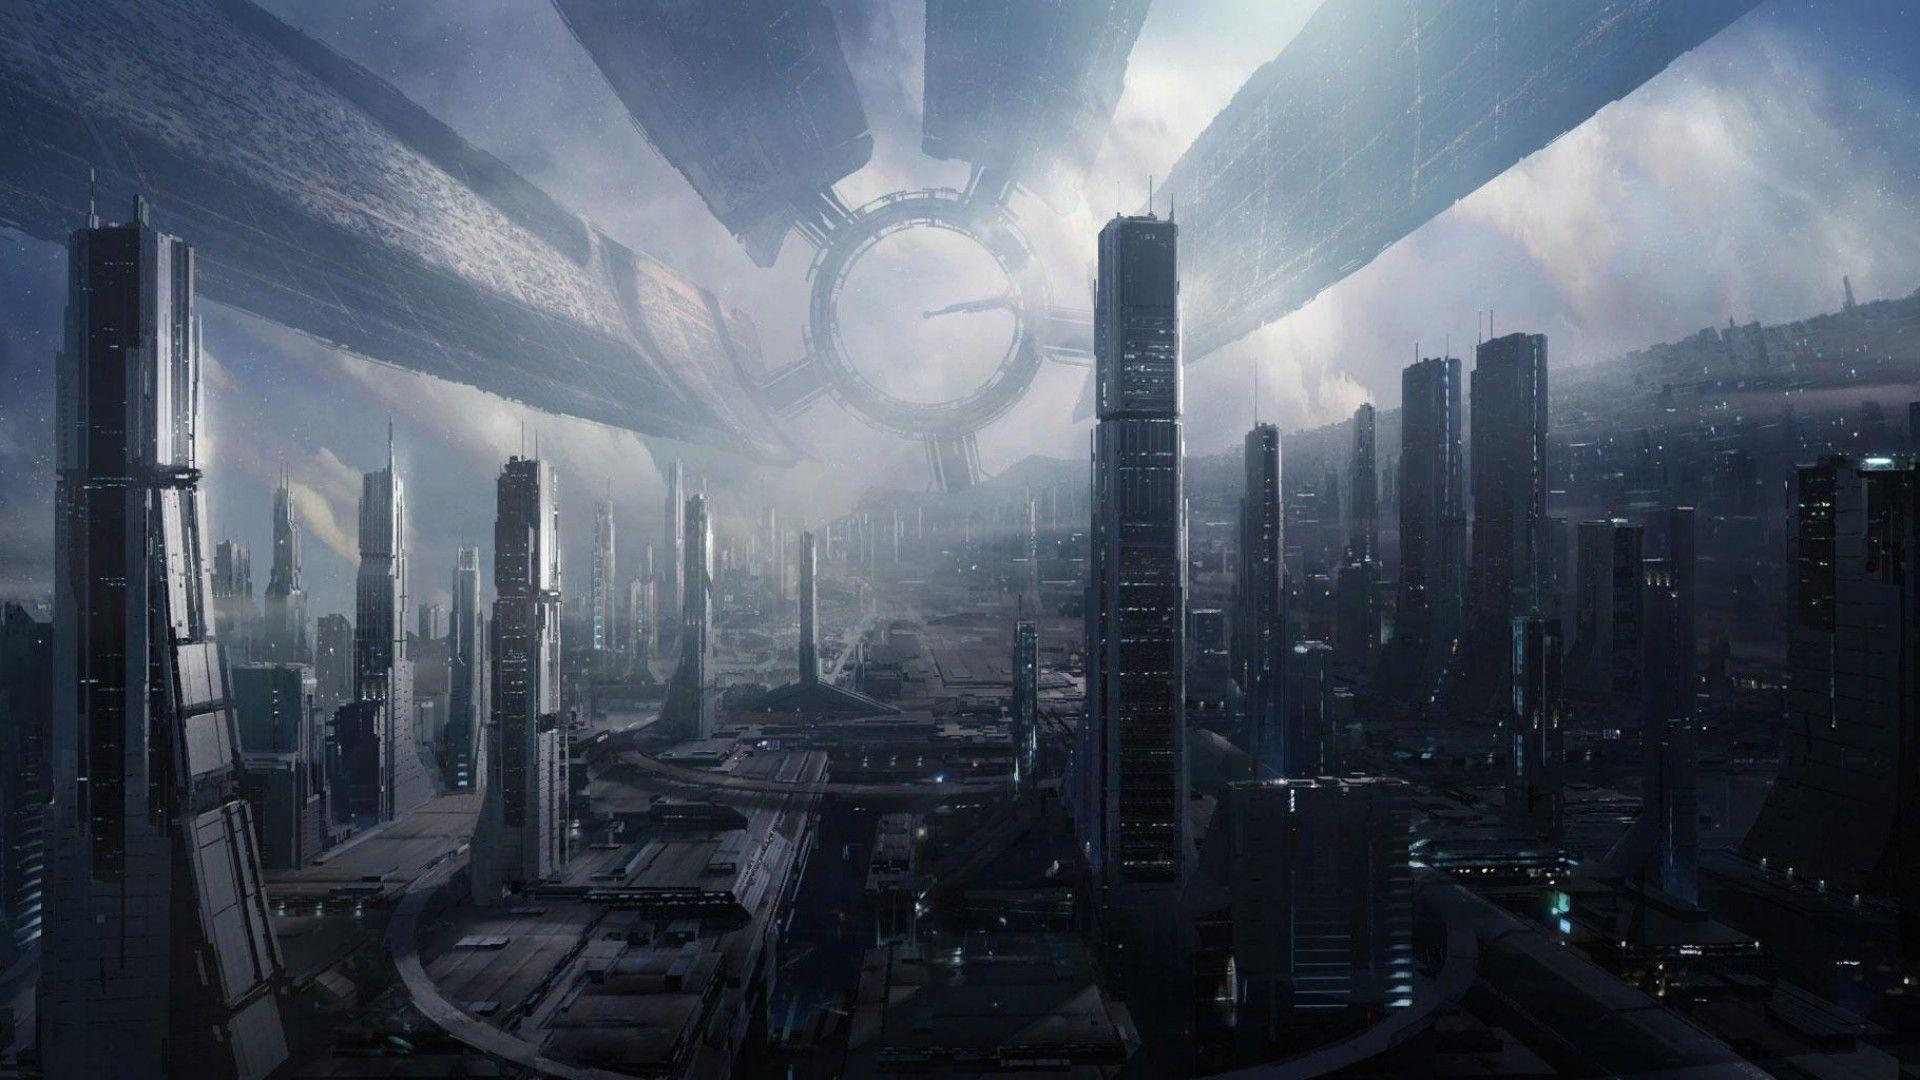 Futuristic City Wallpapers Image & Pictures